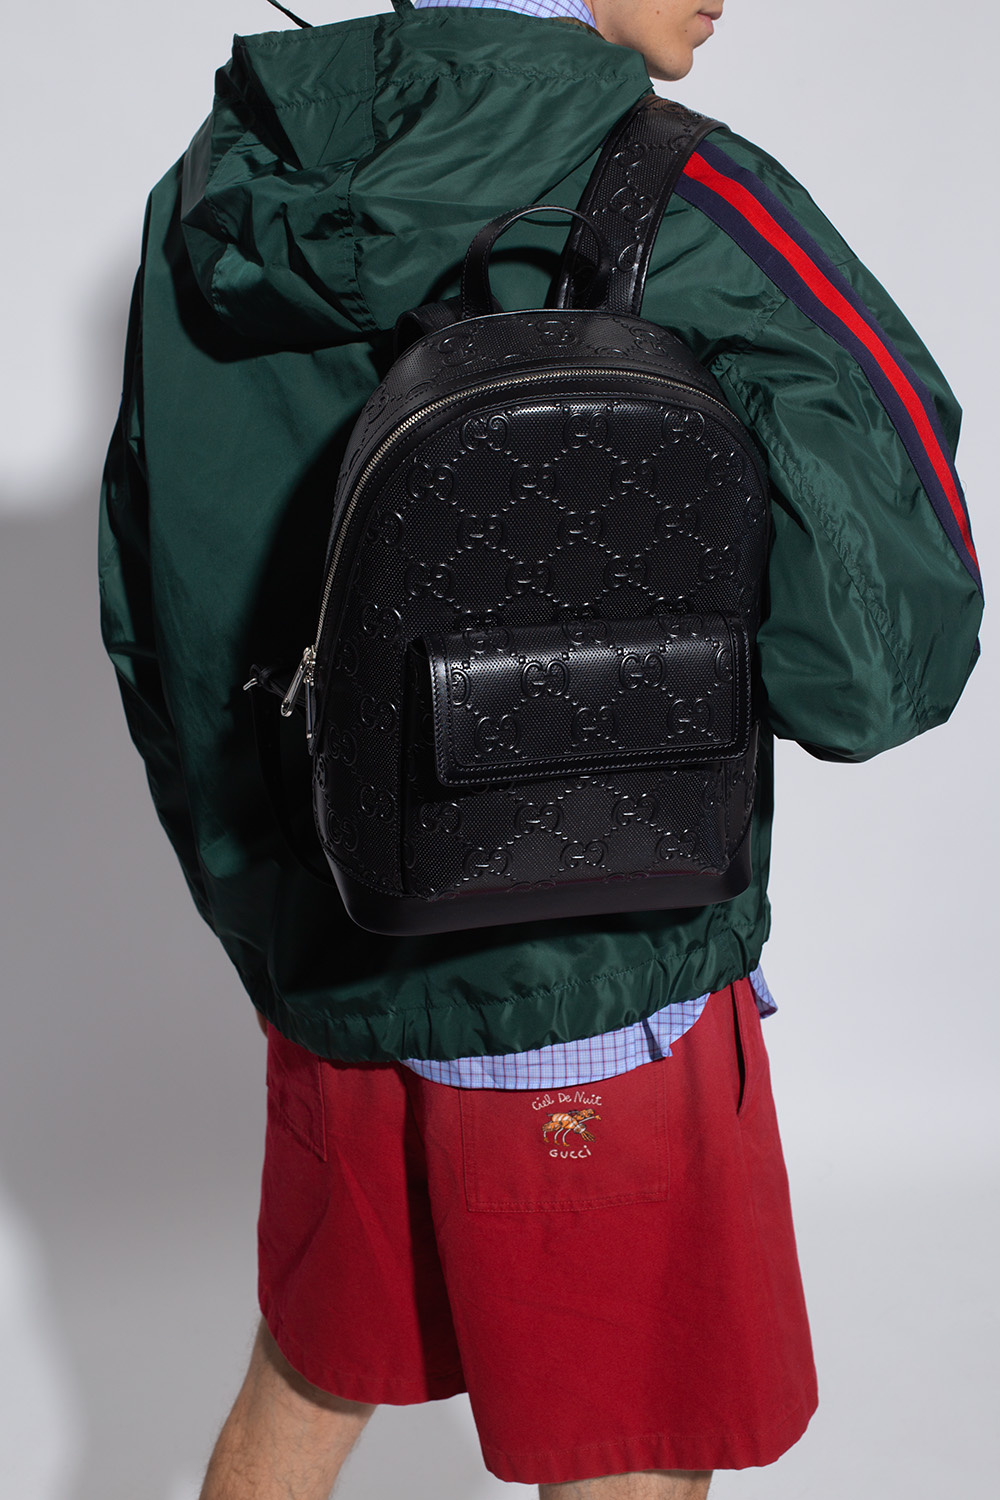 Gucci Backpack with logo